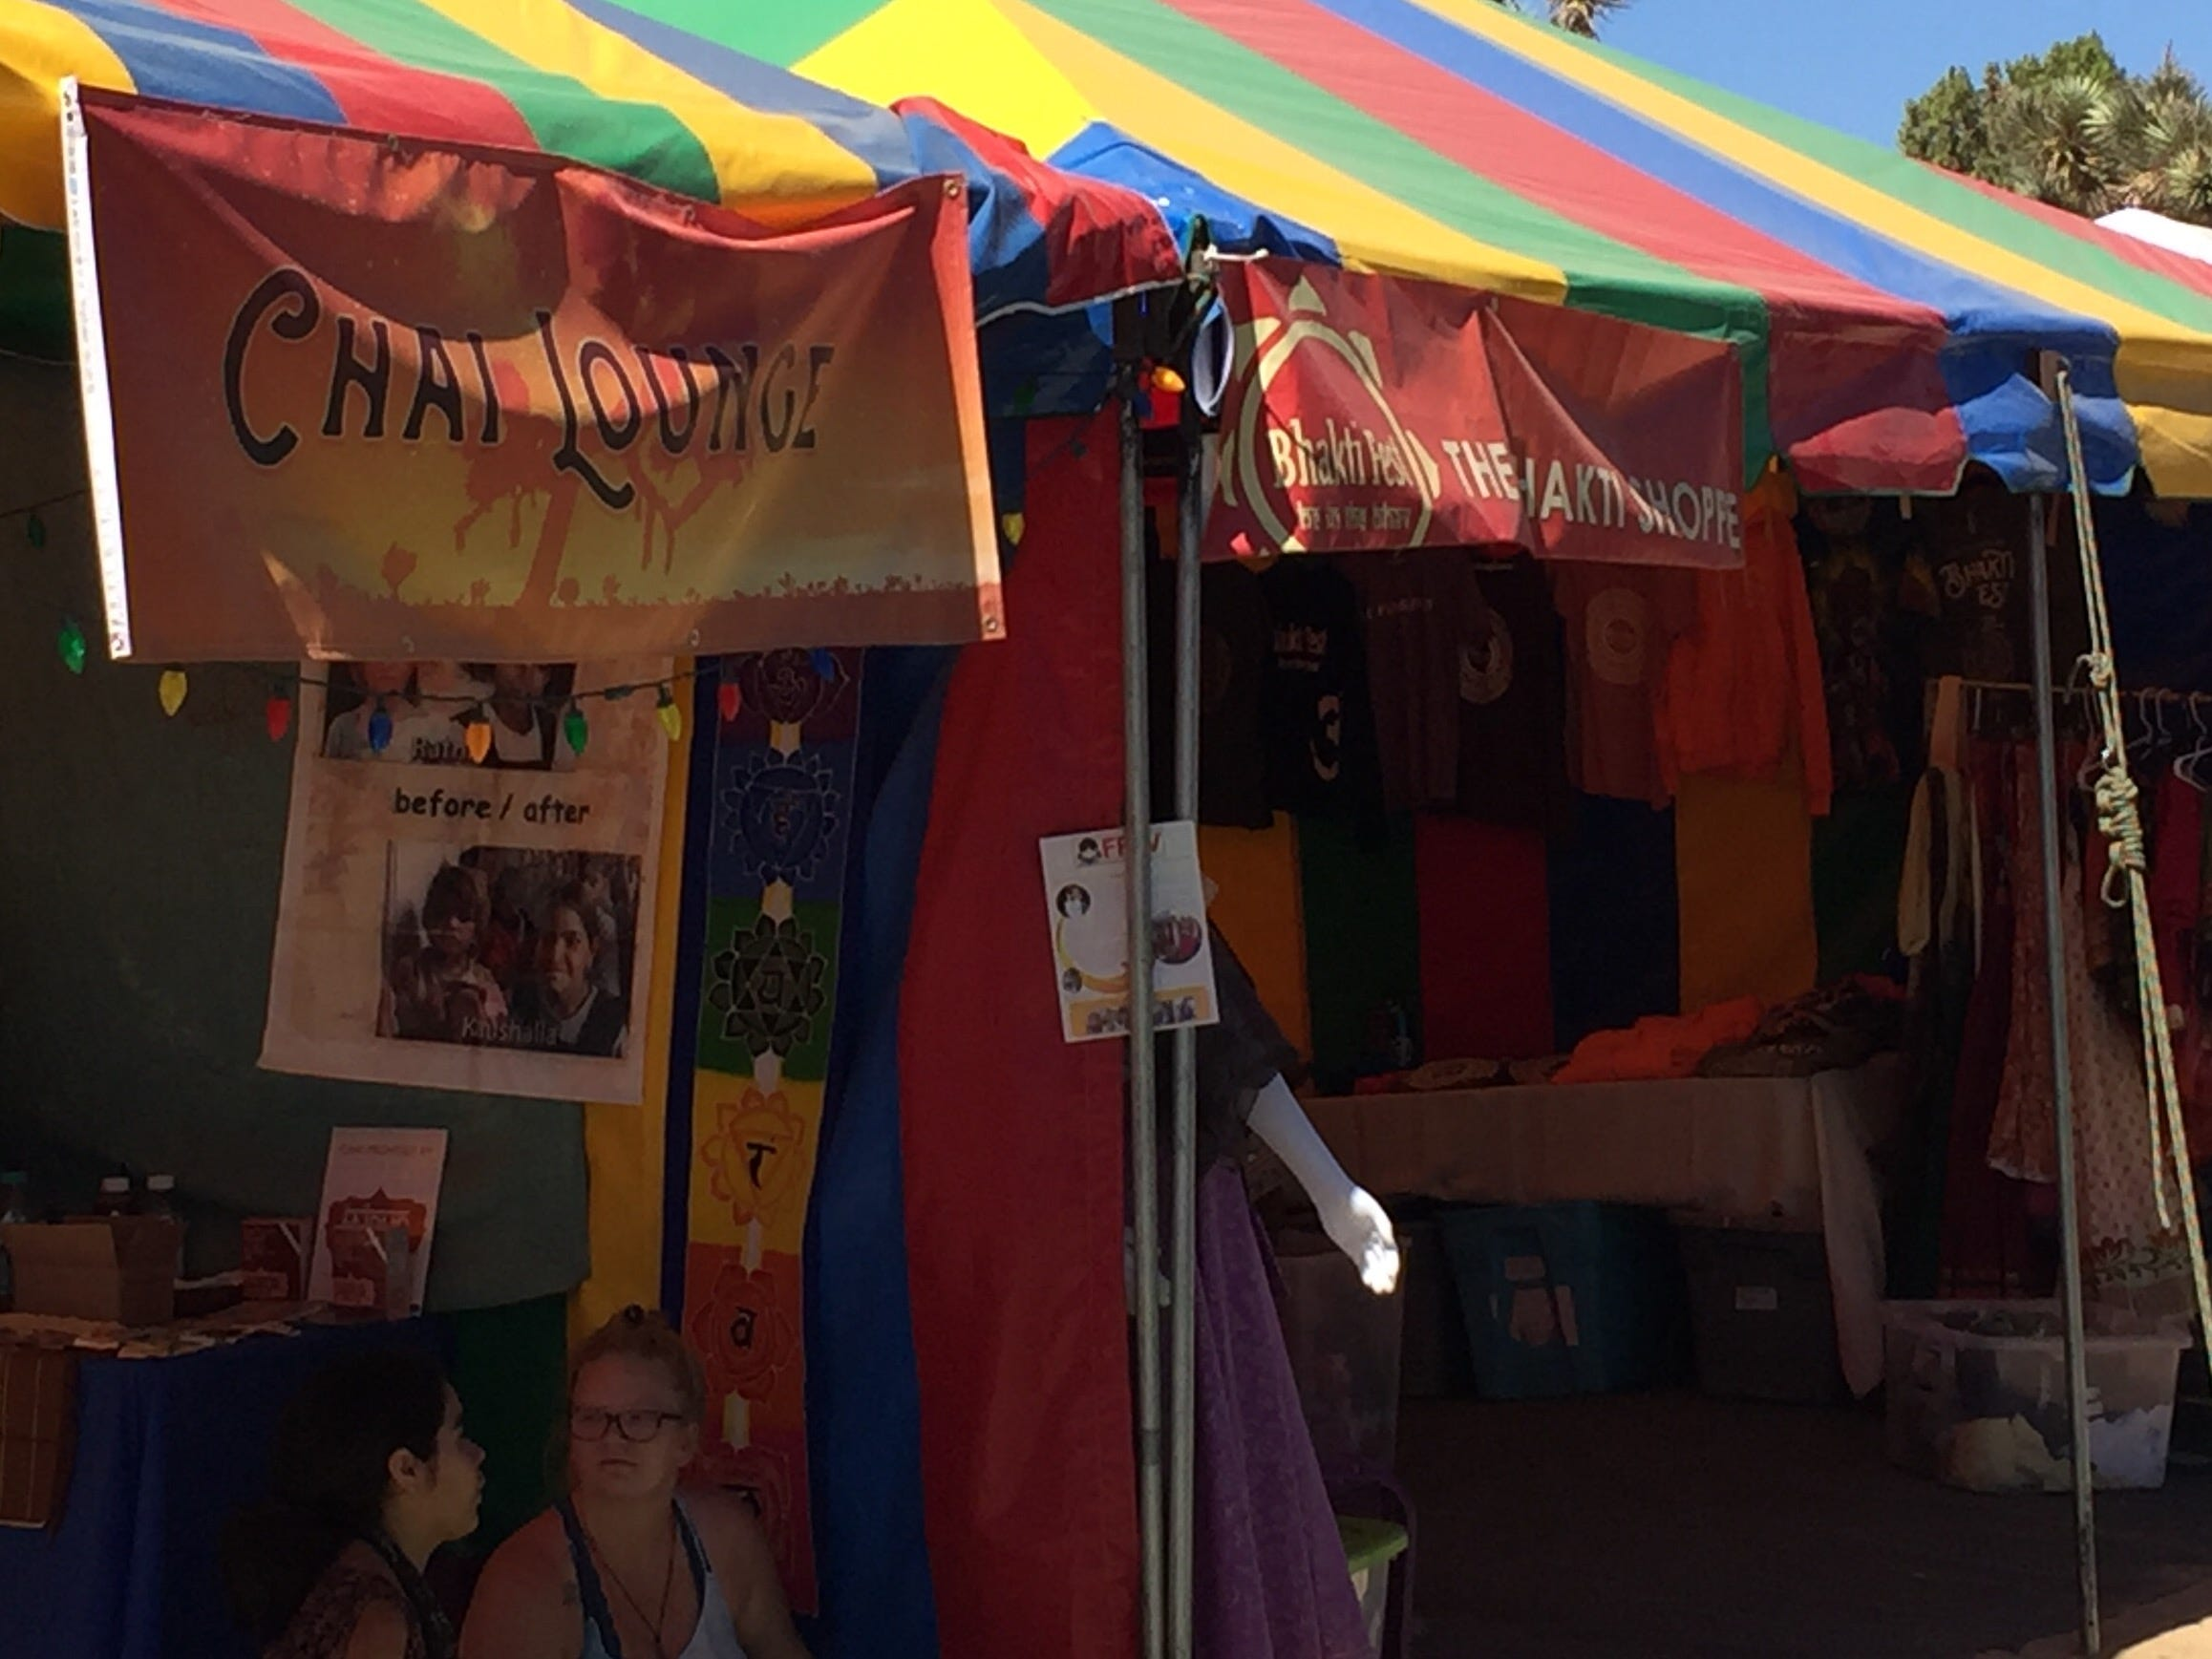 Vendors are a big part of Bhakti Fest, an event that celebrates East Indian sacred music, yoga and integrative health. This is the 10th anniversary of the festival.